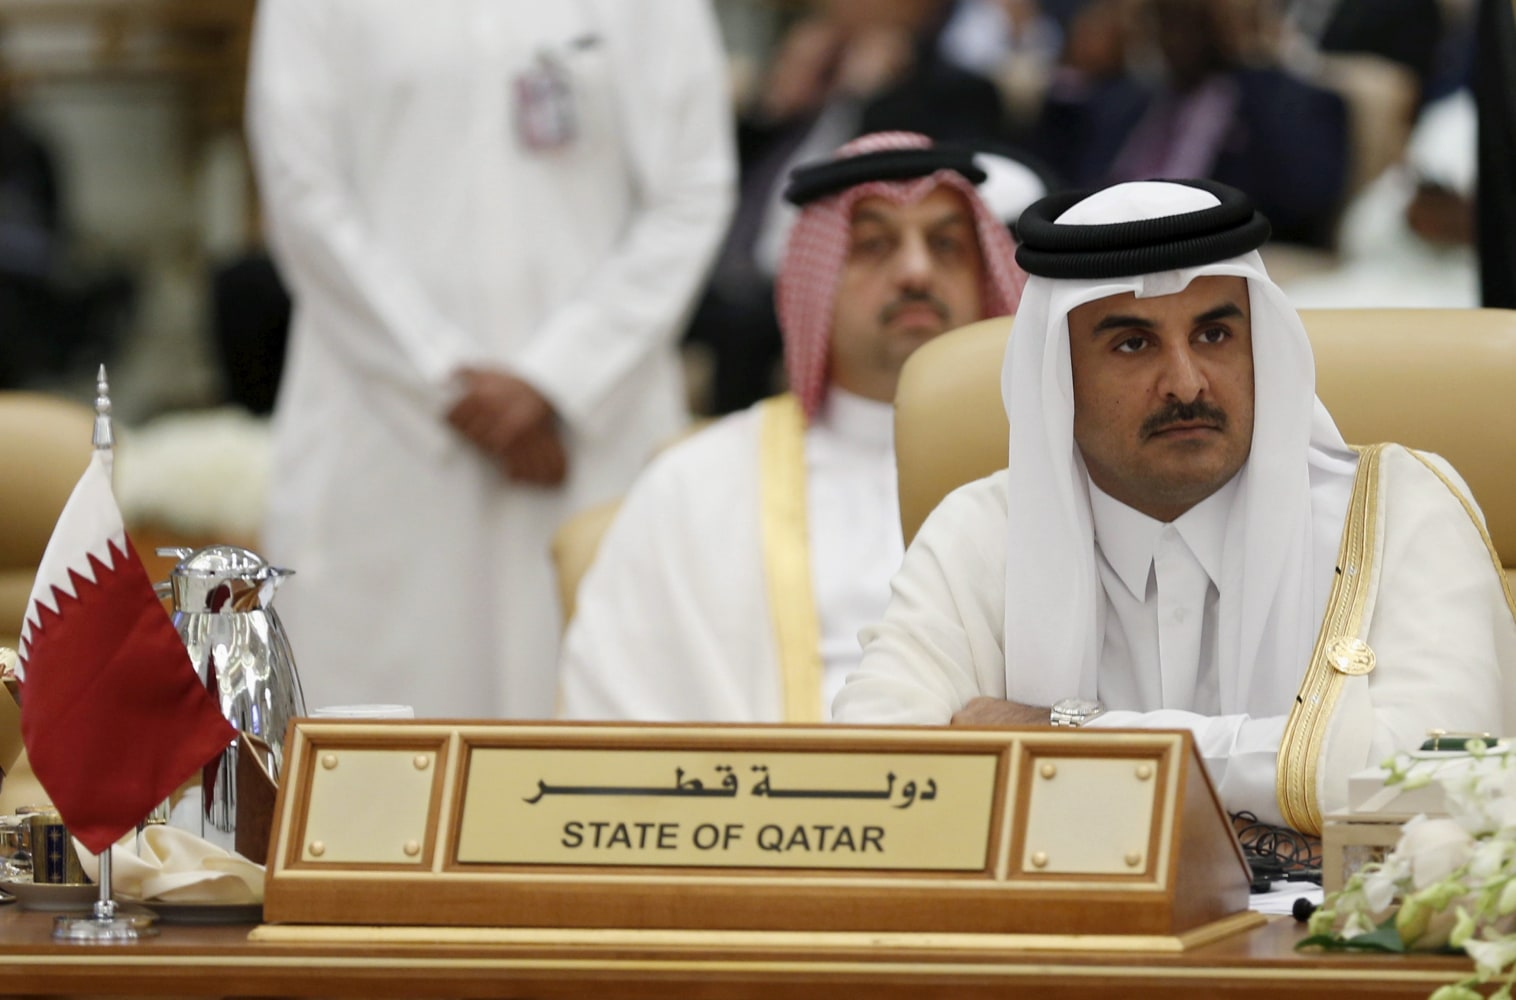 Saudi Arabia cuts diplomatic ties to Qatar